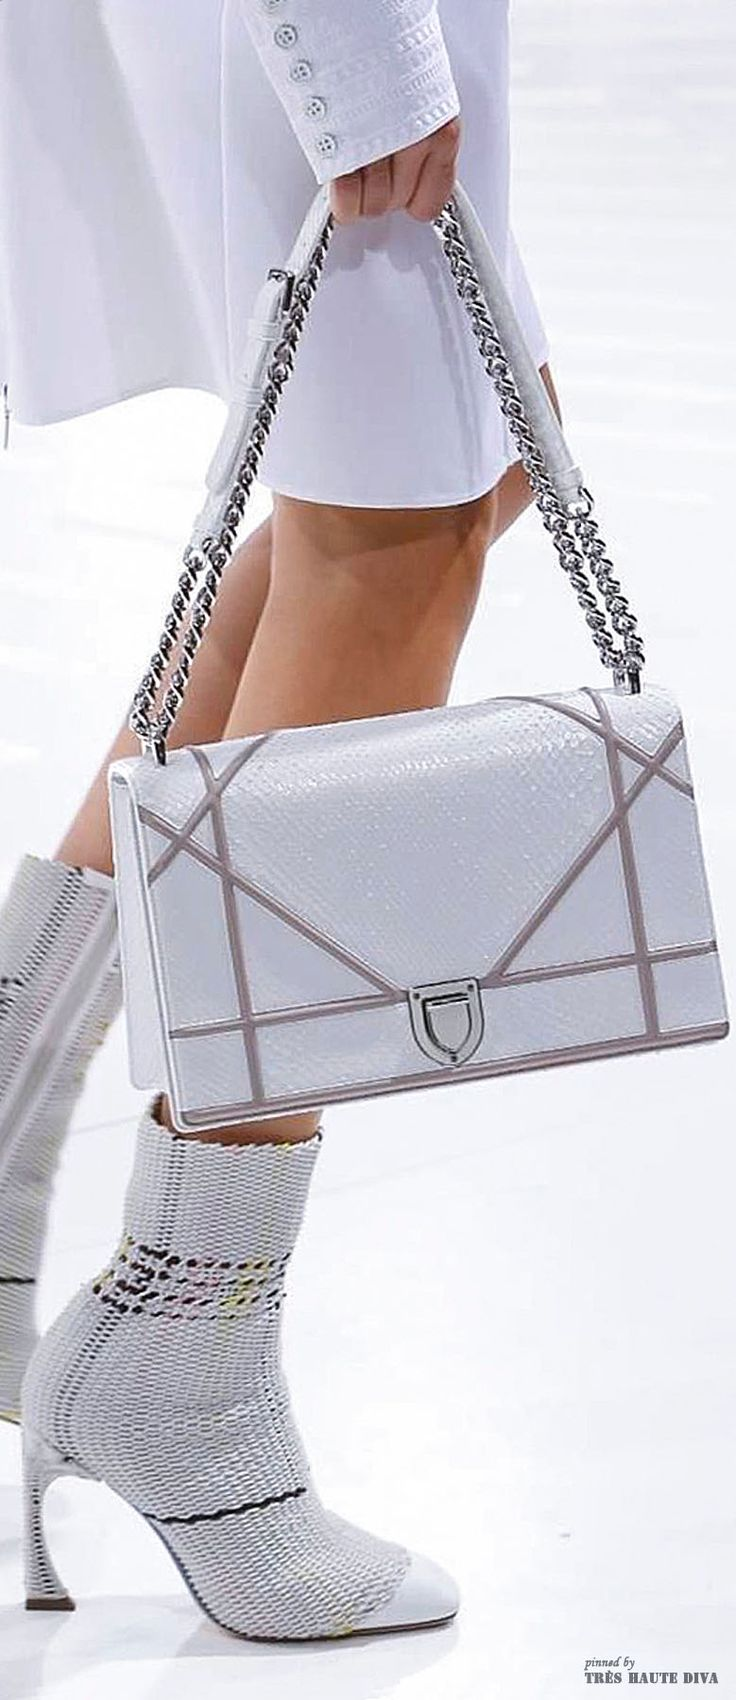 #Paris FW Christian Dior Spring Summer 2015 detail = pin courtesy of Tres Haute Diva iw